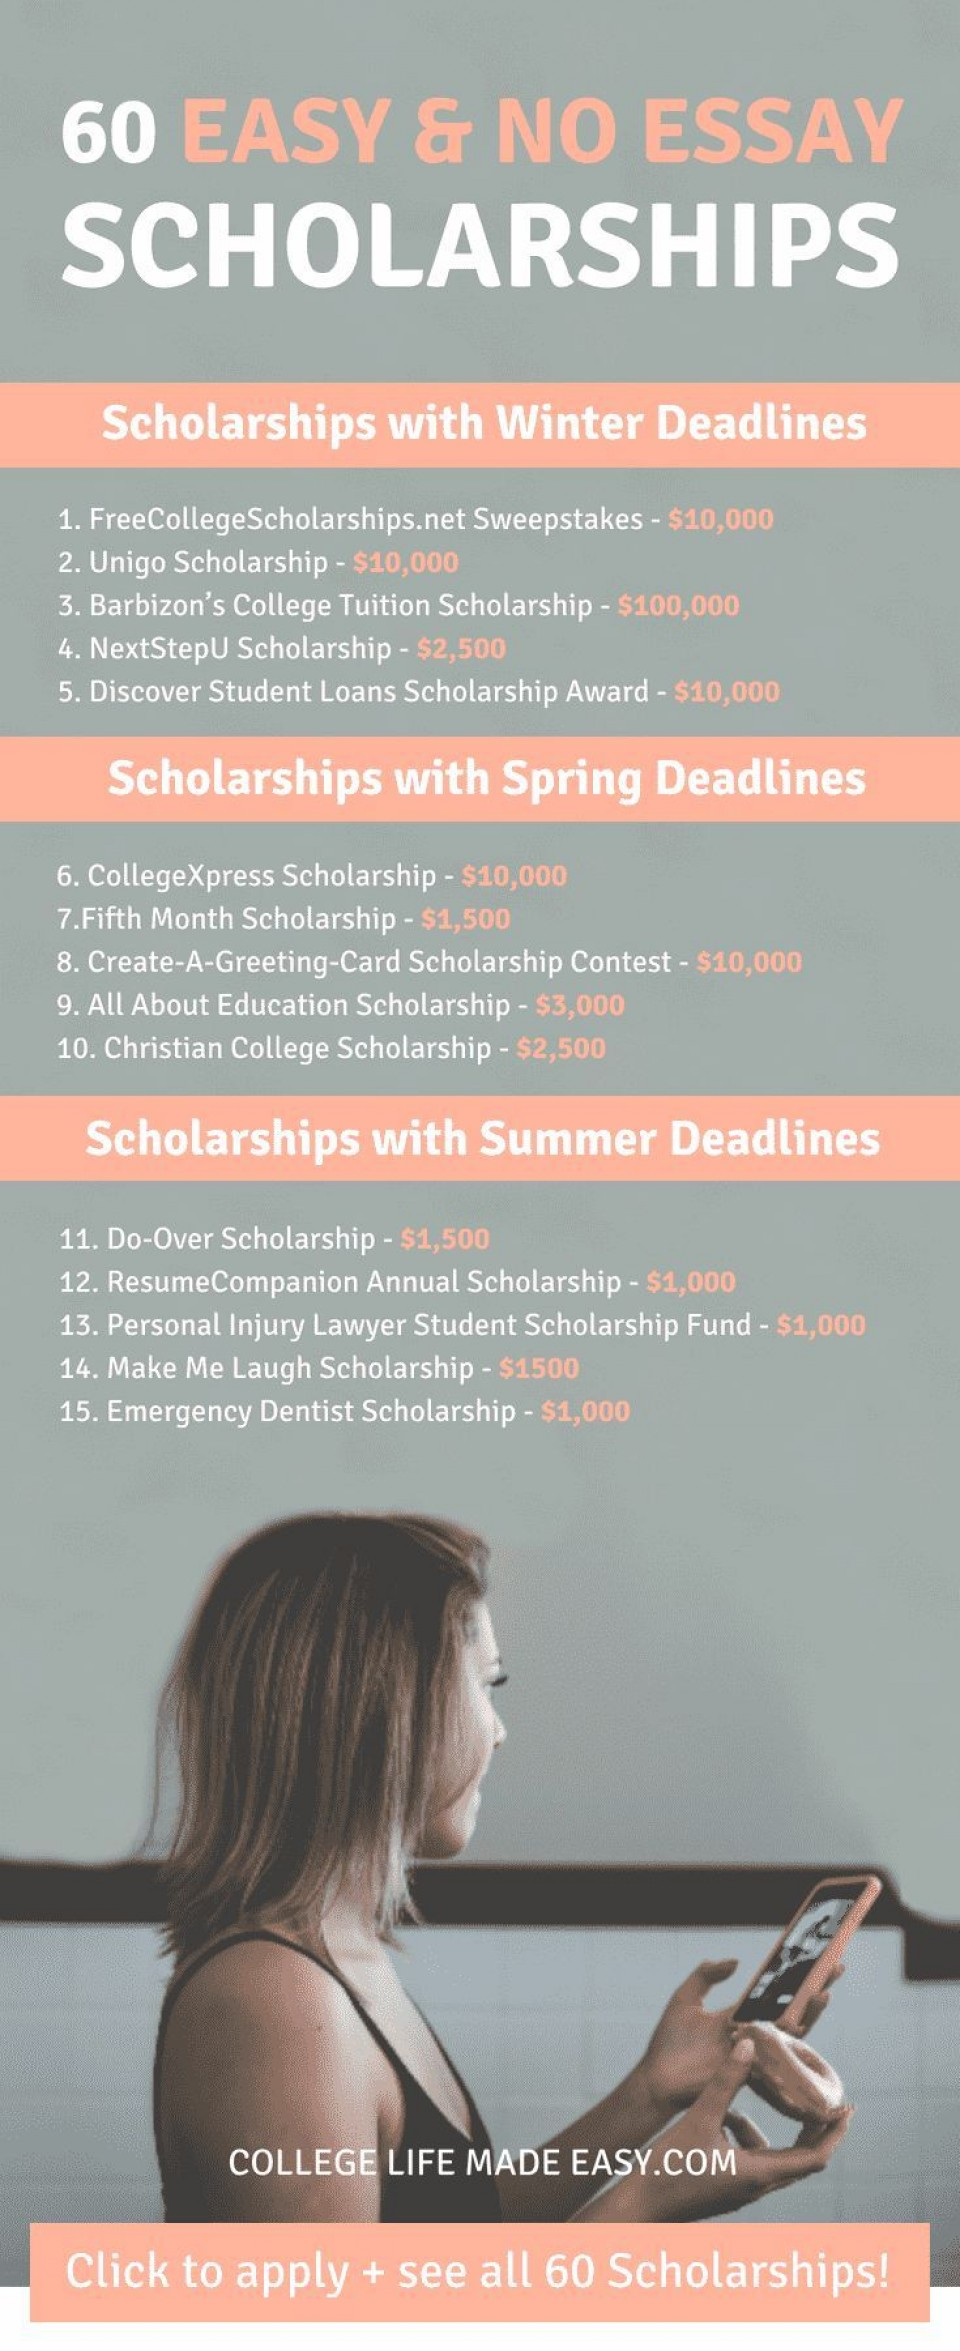 006 No Essay Scholarship Wondrous College Scholarships 2018 2019 Free 960